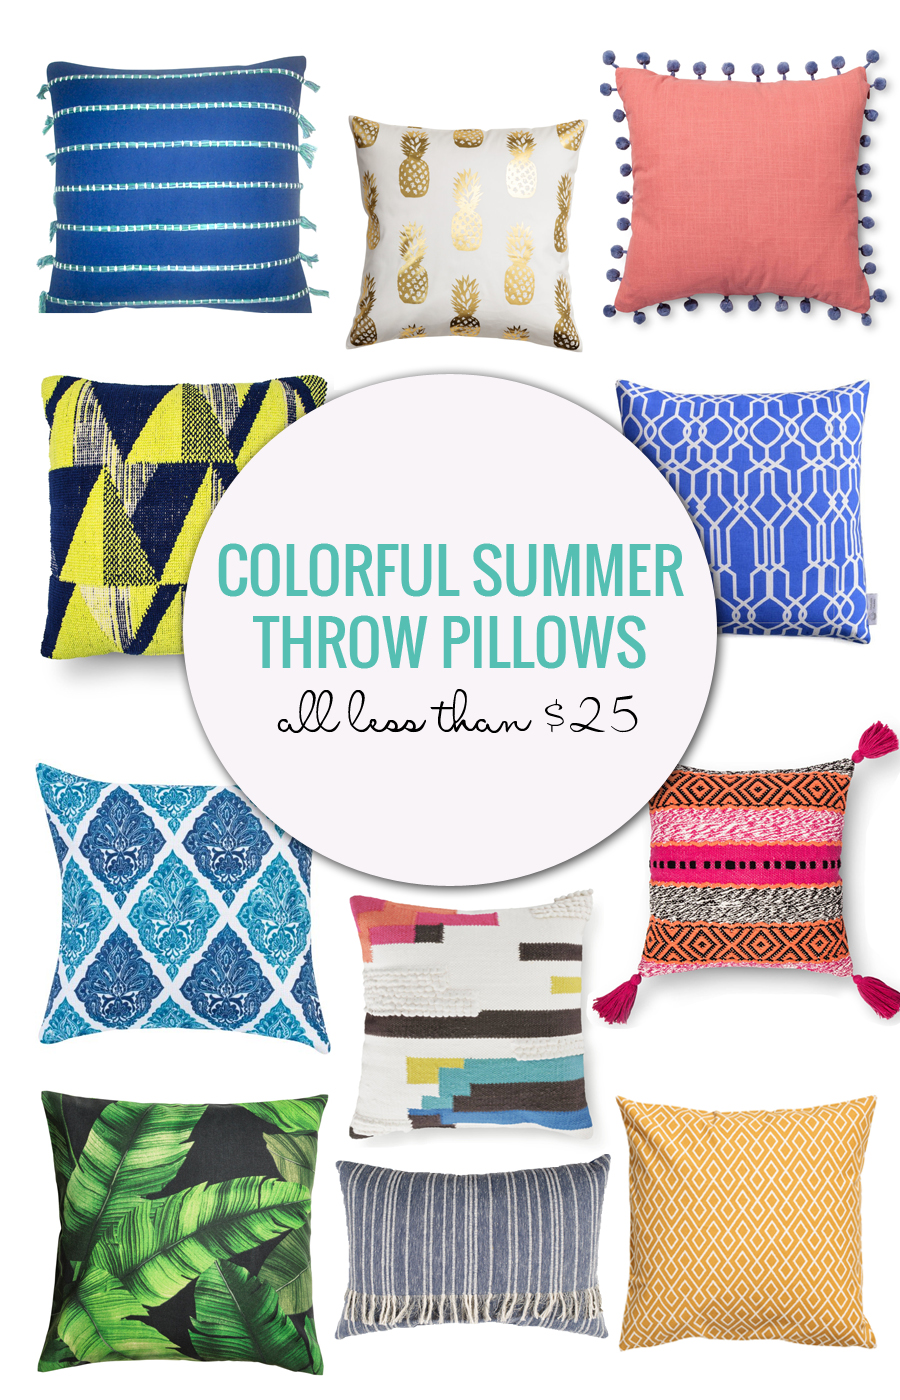 Colorful Summer Throw Pillows Under $25